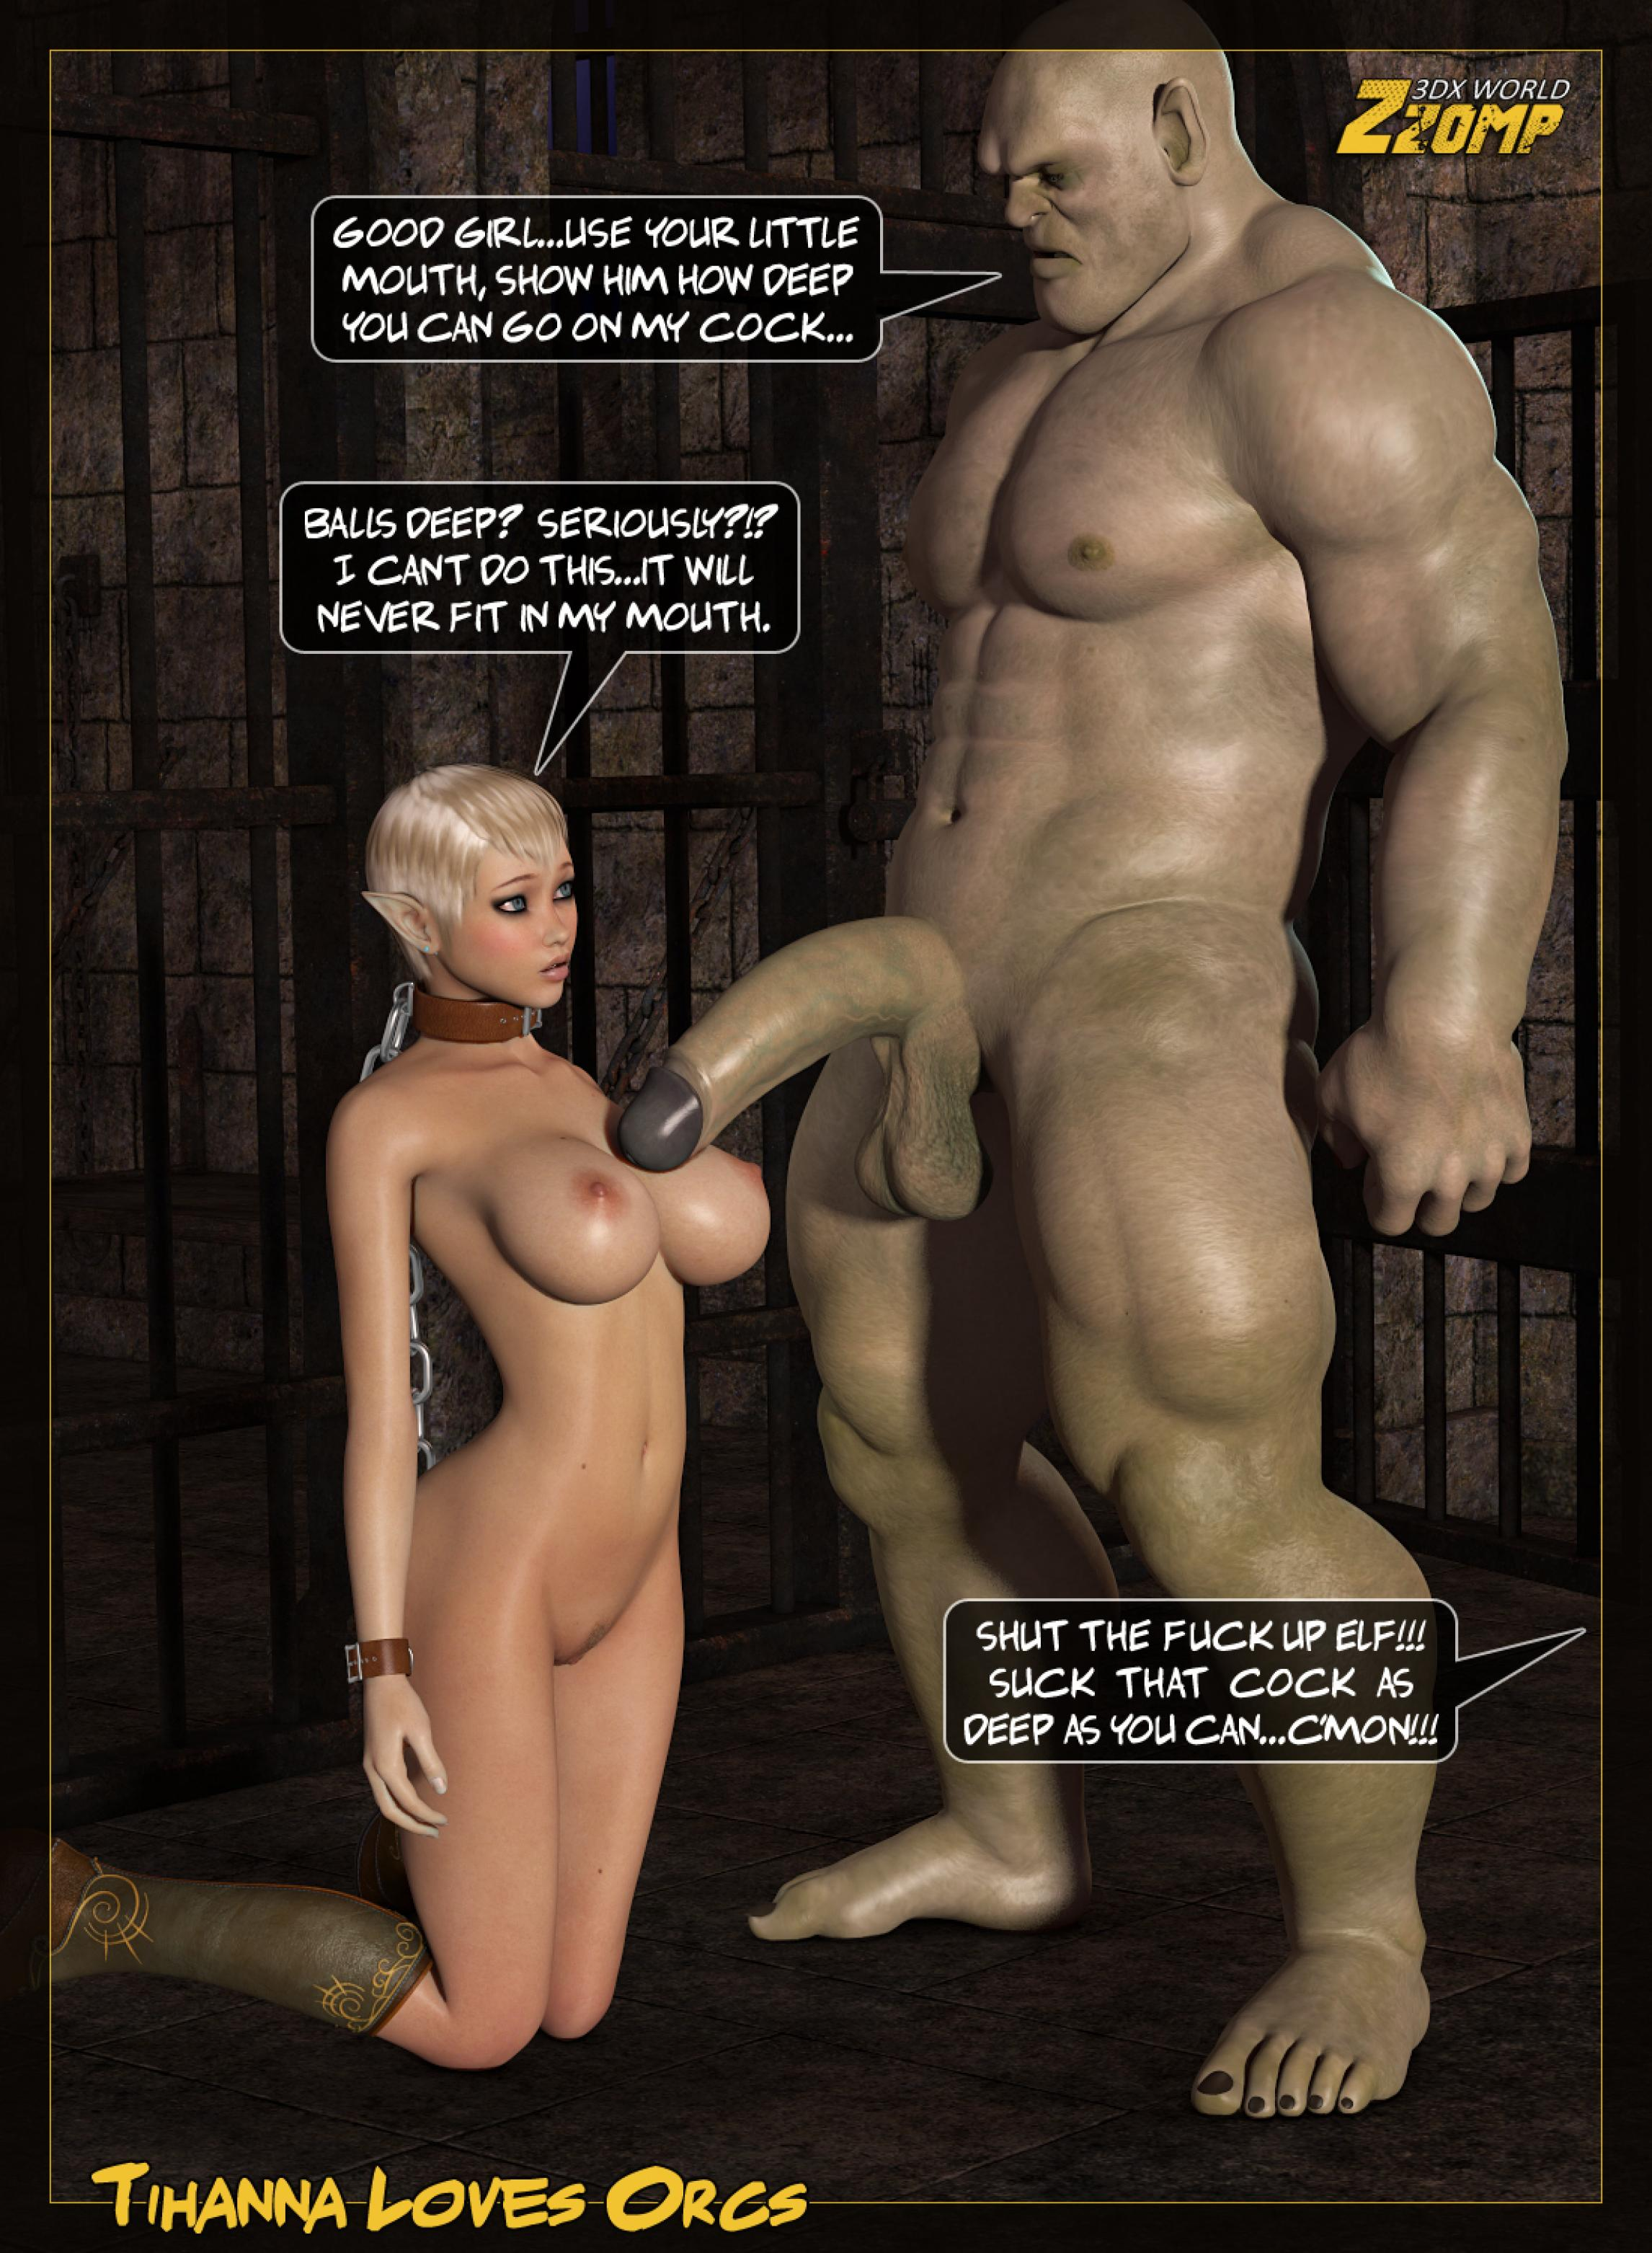 Pussy Blonde Captions - Hot female elves nude captions . 40 New Sex Pics.